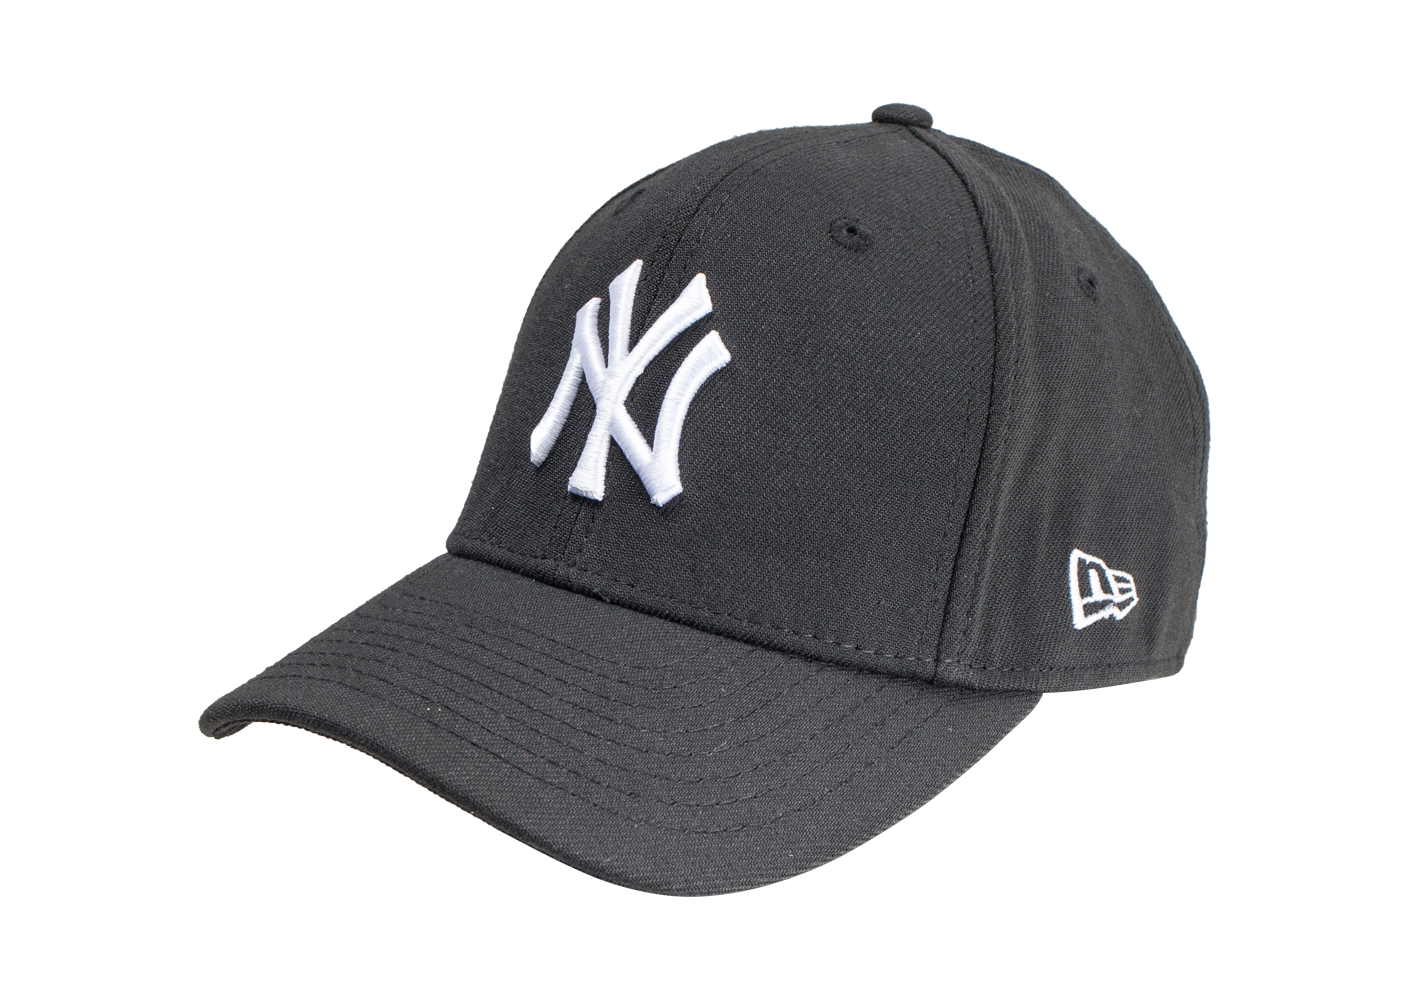 New Era Homme Casquette 9/50 Snapback Ny Noire